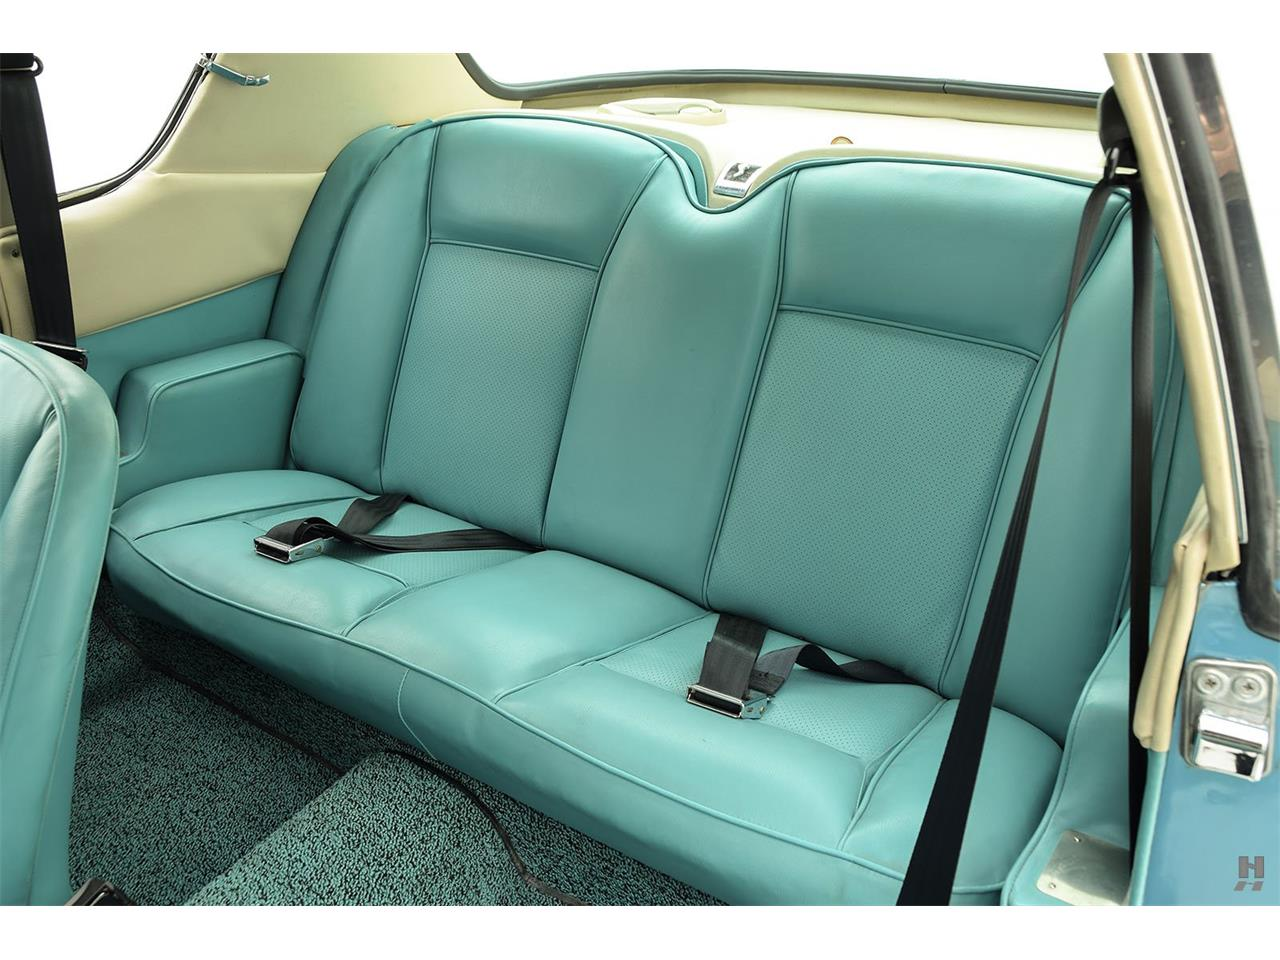 Large Picture of '63 Studebaker Avanti located in Missouri - $77,500.00 Offered by Hyman Ltd. Classic Cars - MGHN